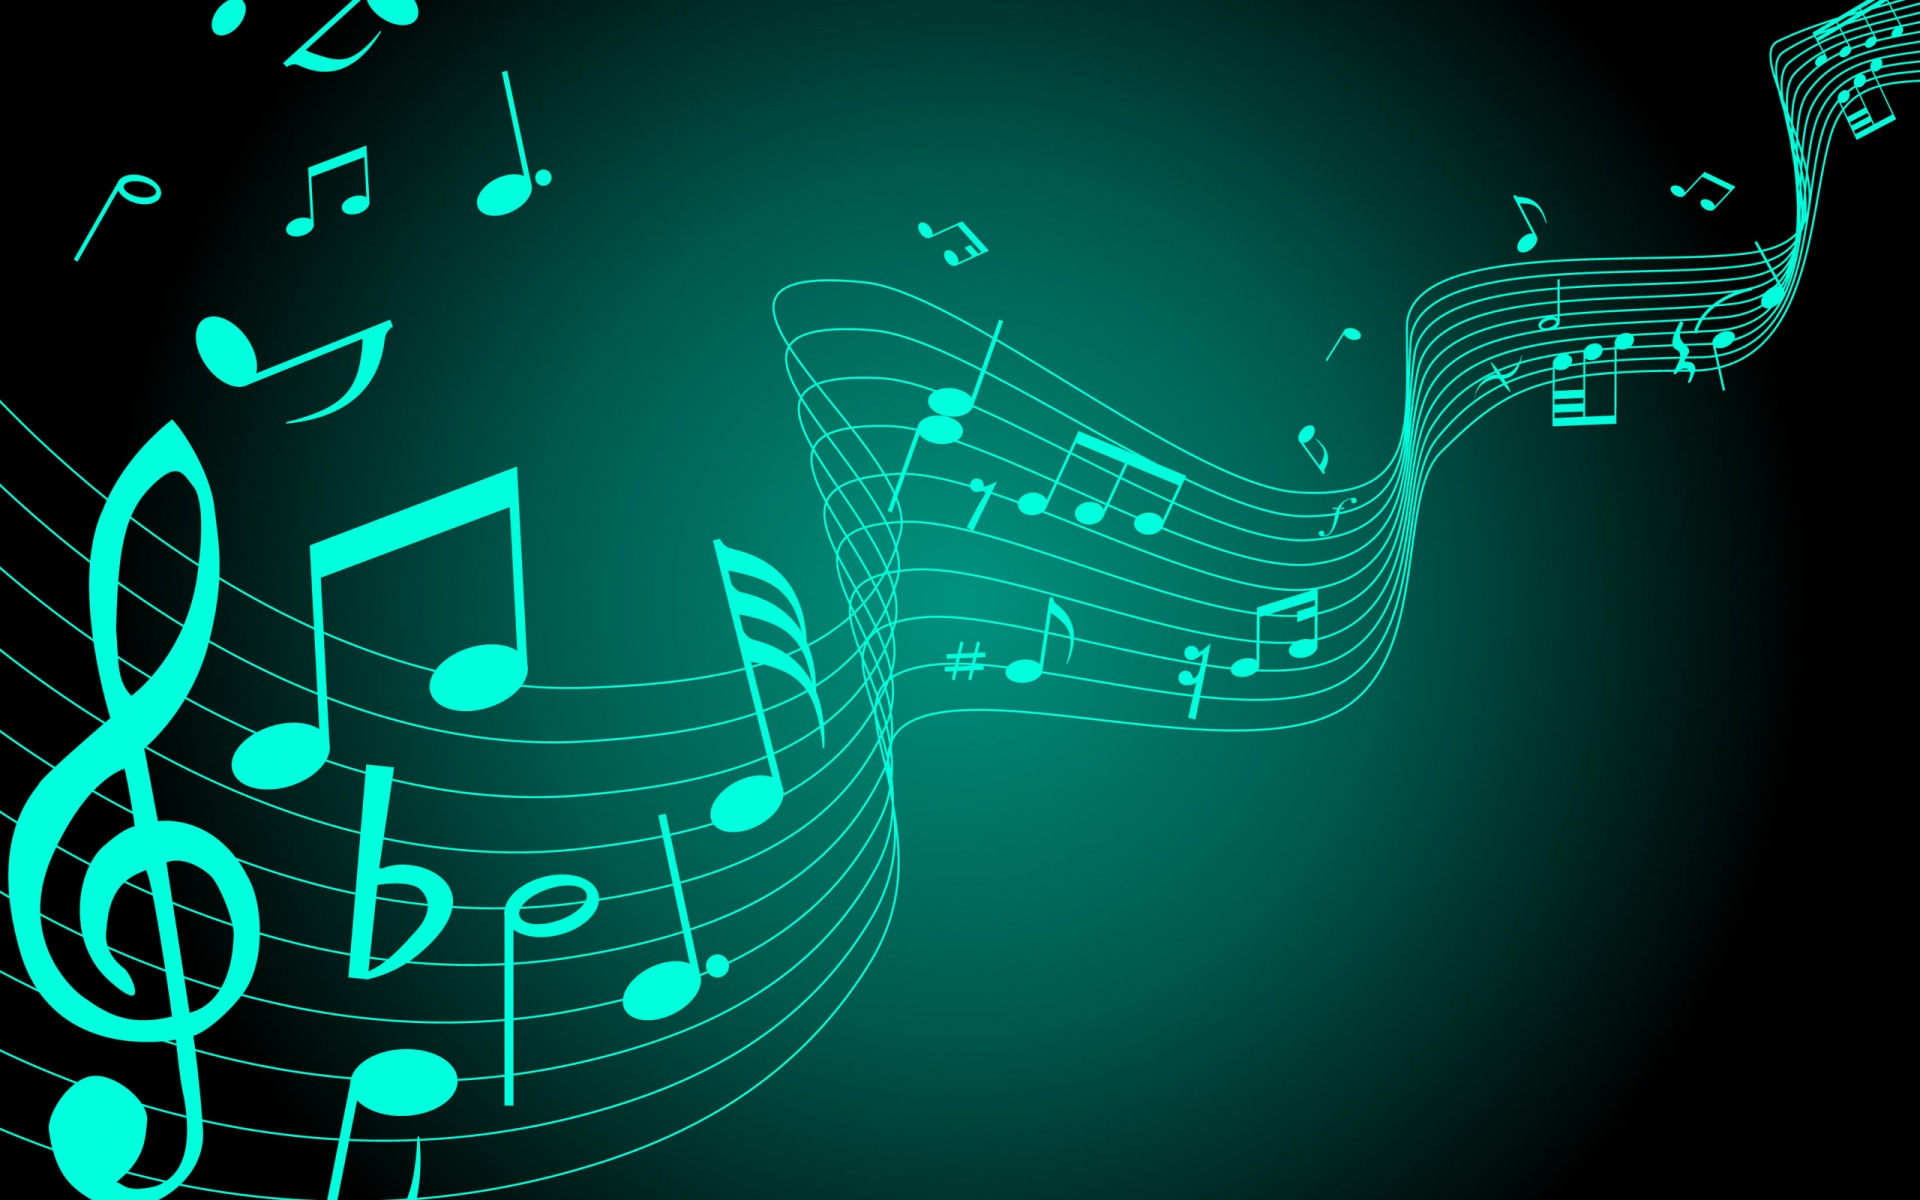 Elementi costitutivi della musica karmanews - Music hd wallpapers free download ...